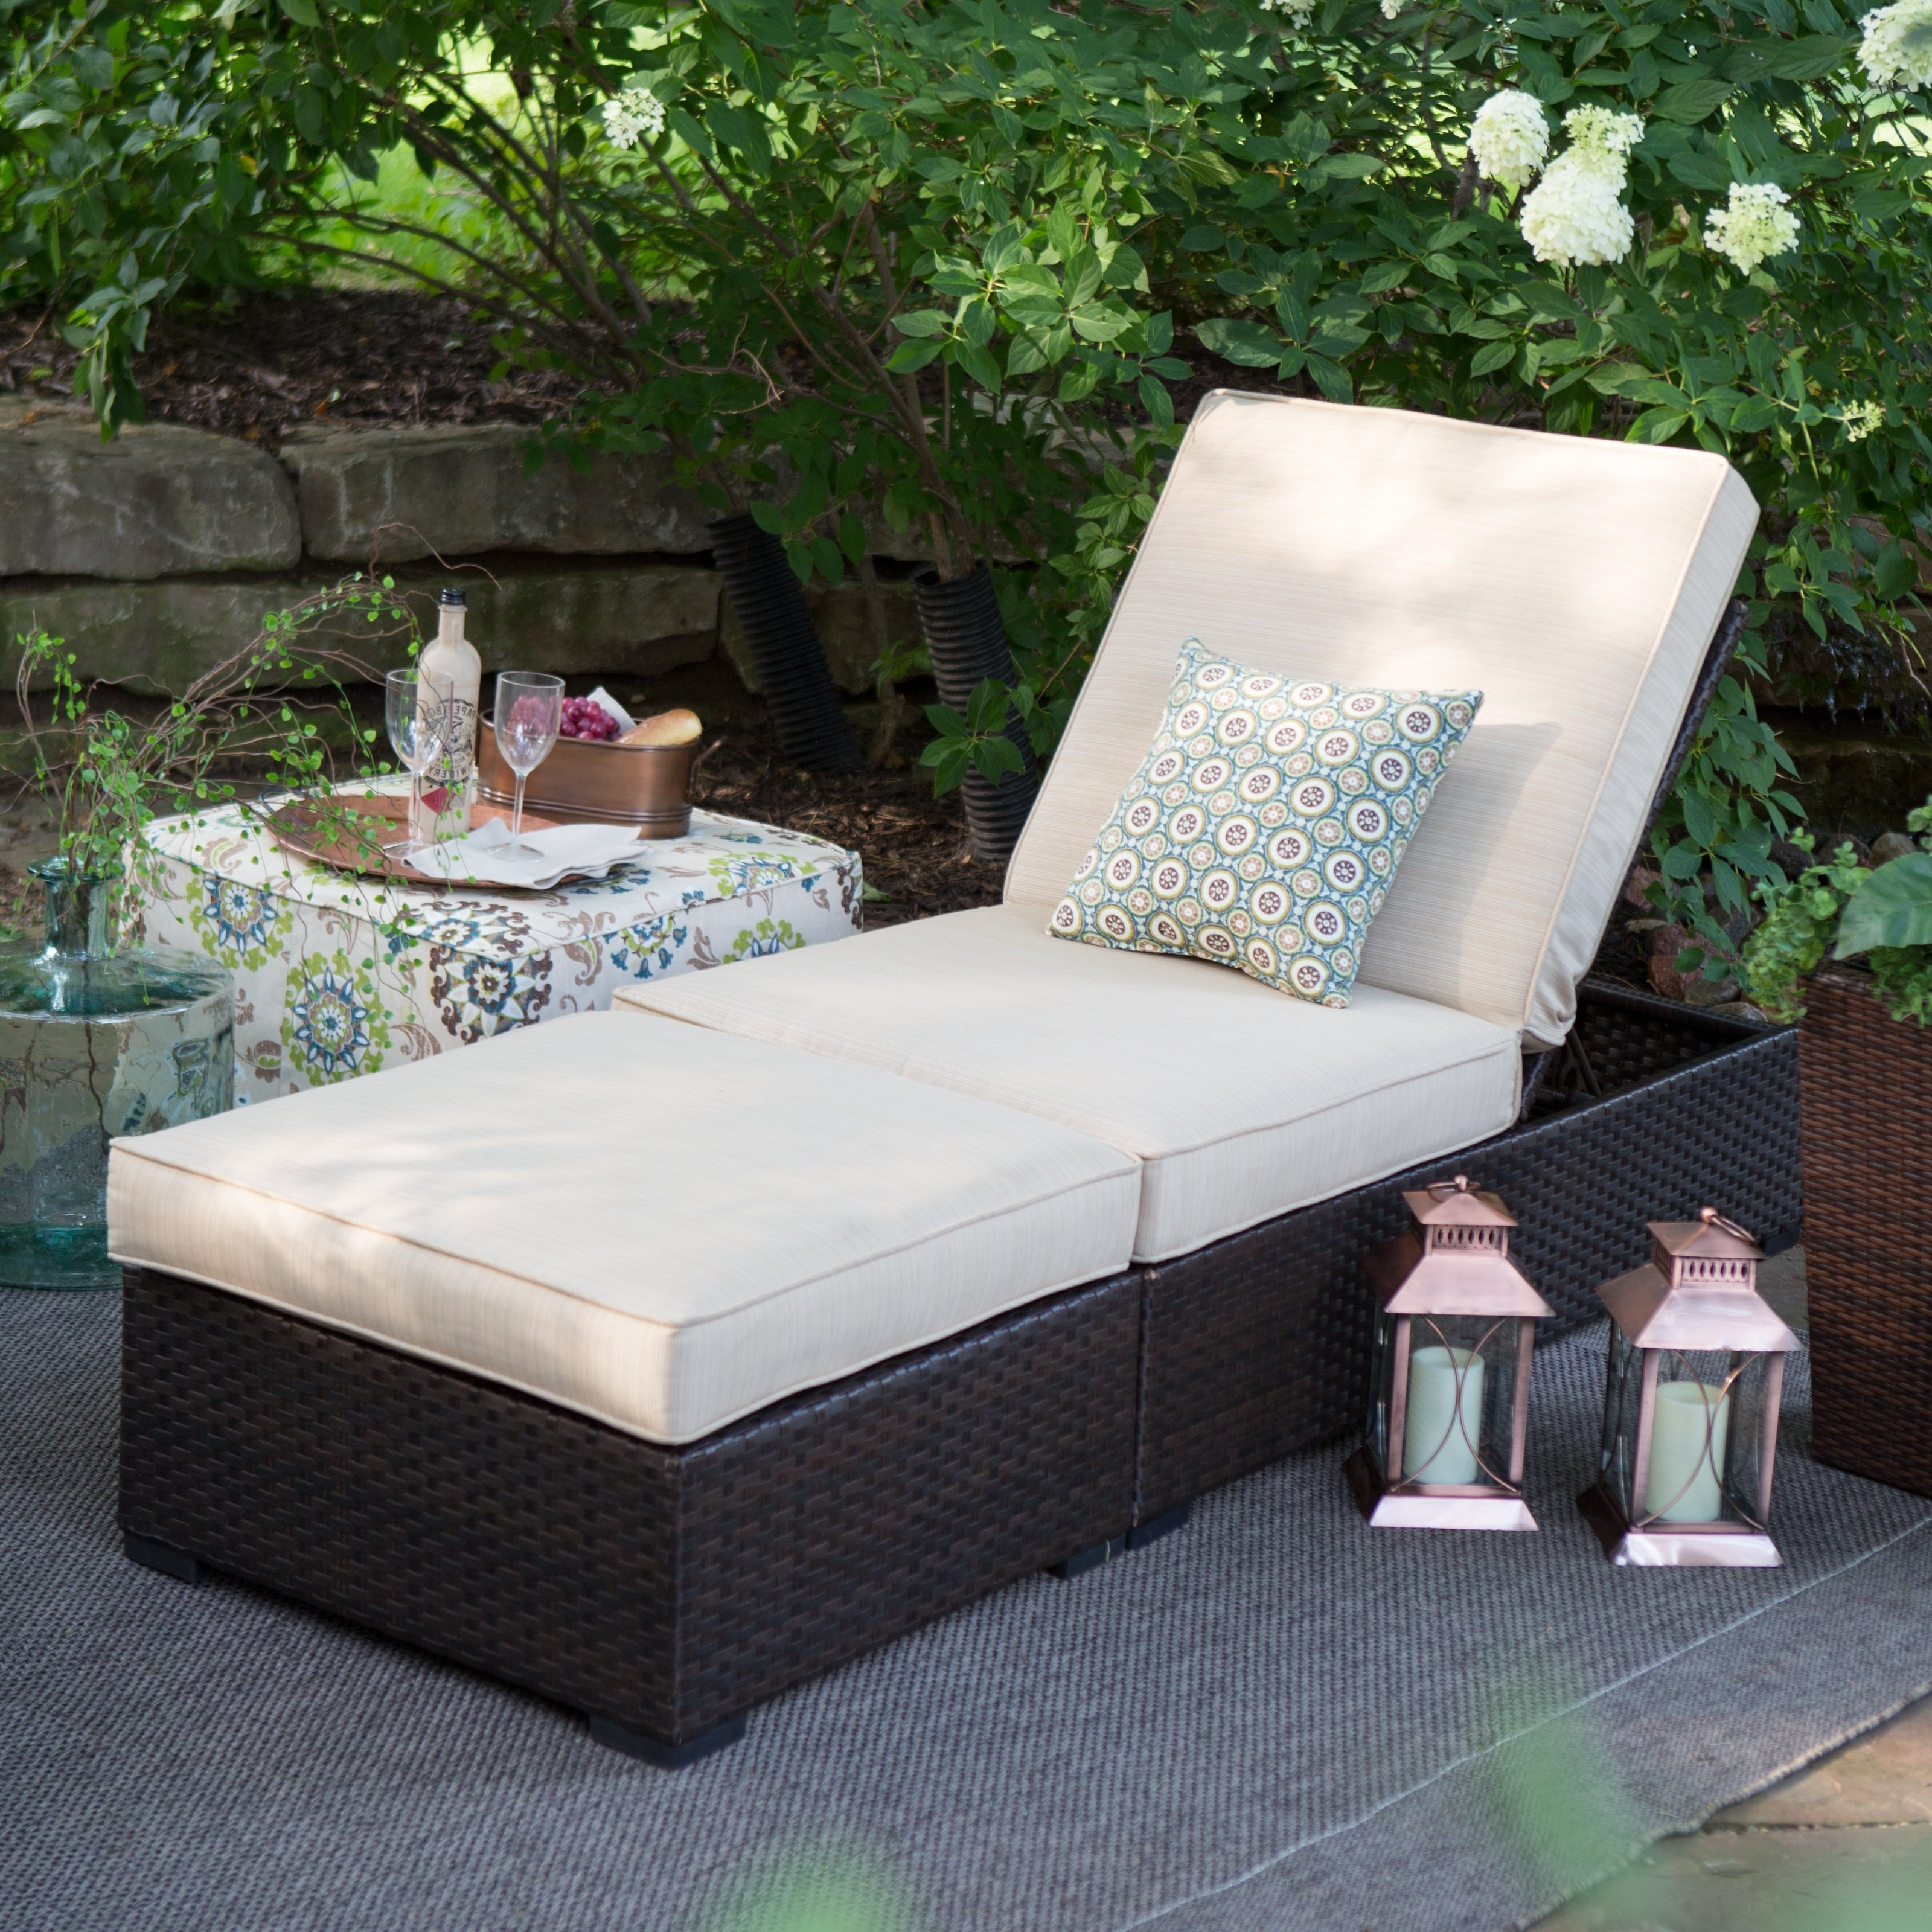 Outdoor Wicker Chaise Lounges Regarding Trendy Belham Living Marcella Wide Wicker Chaise Lounge With Ottoman (View 7 of 15)